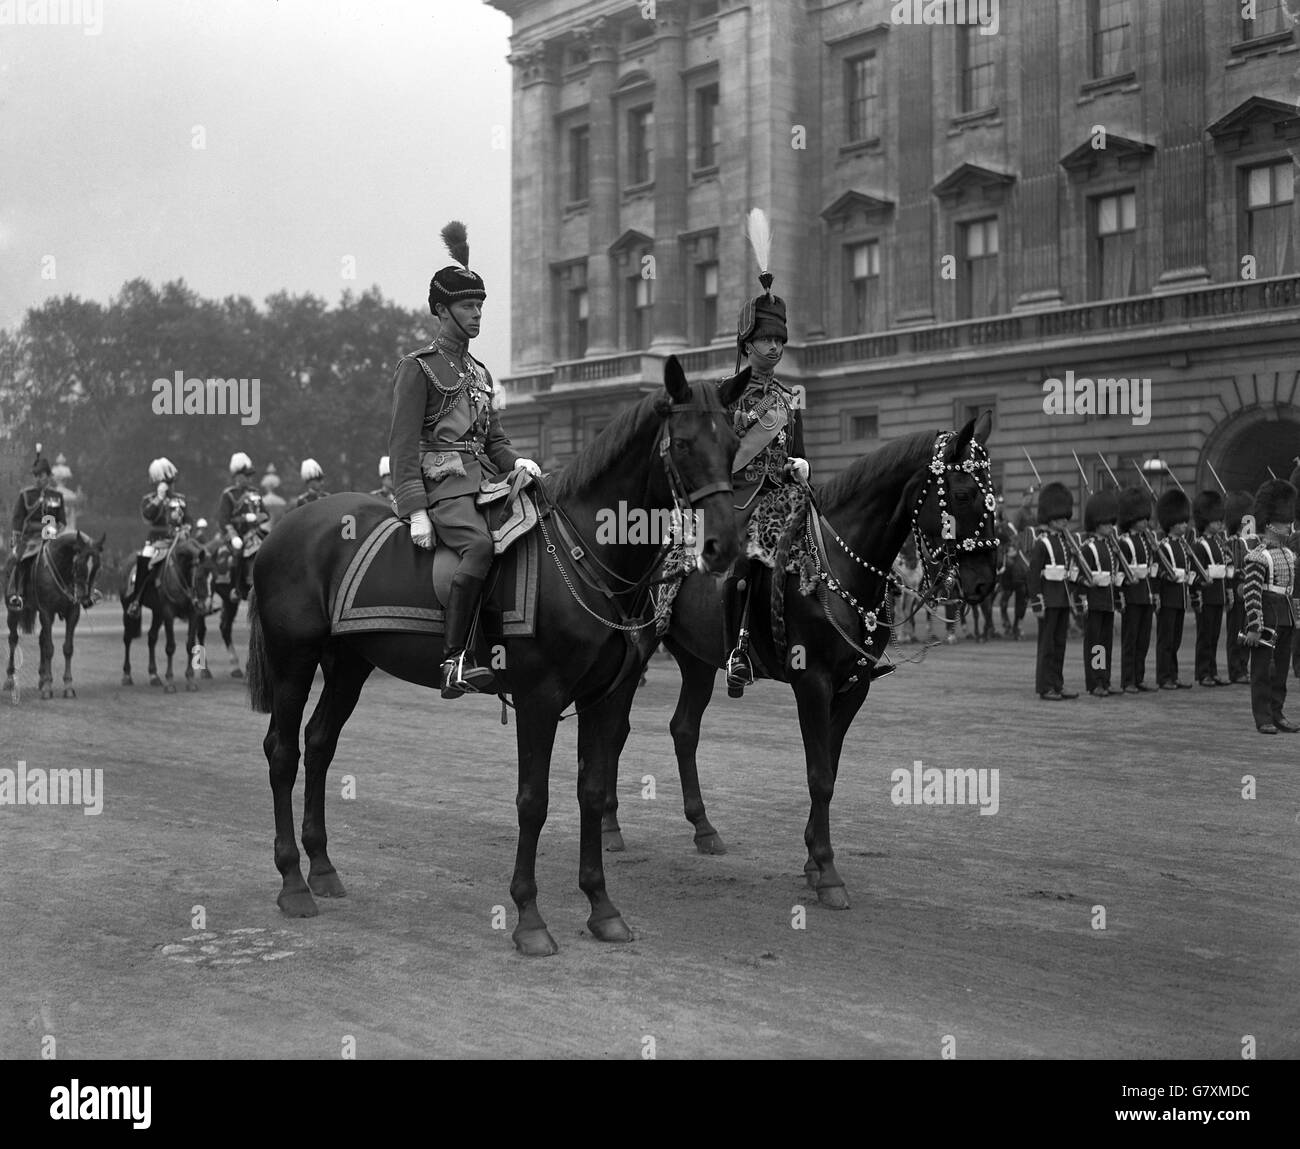 Royalty - Trooping of the Colour - Buckingham Palace Stock Photo